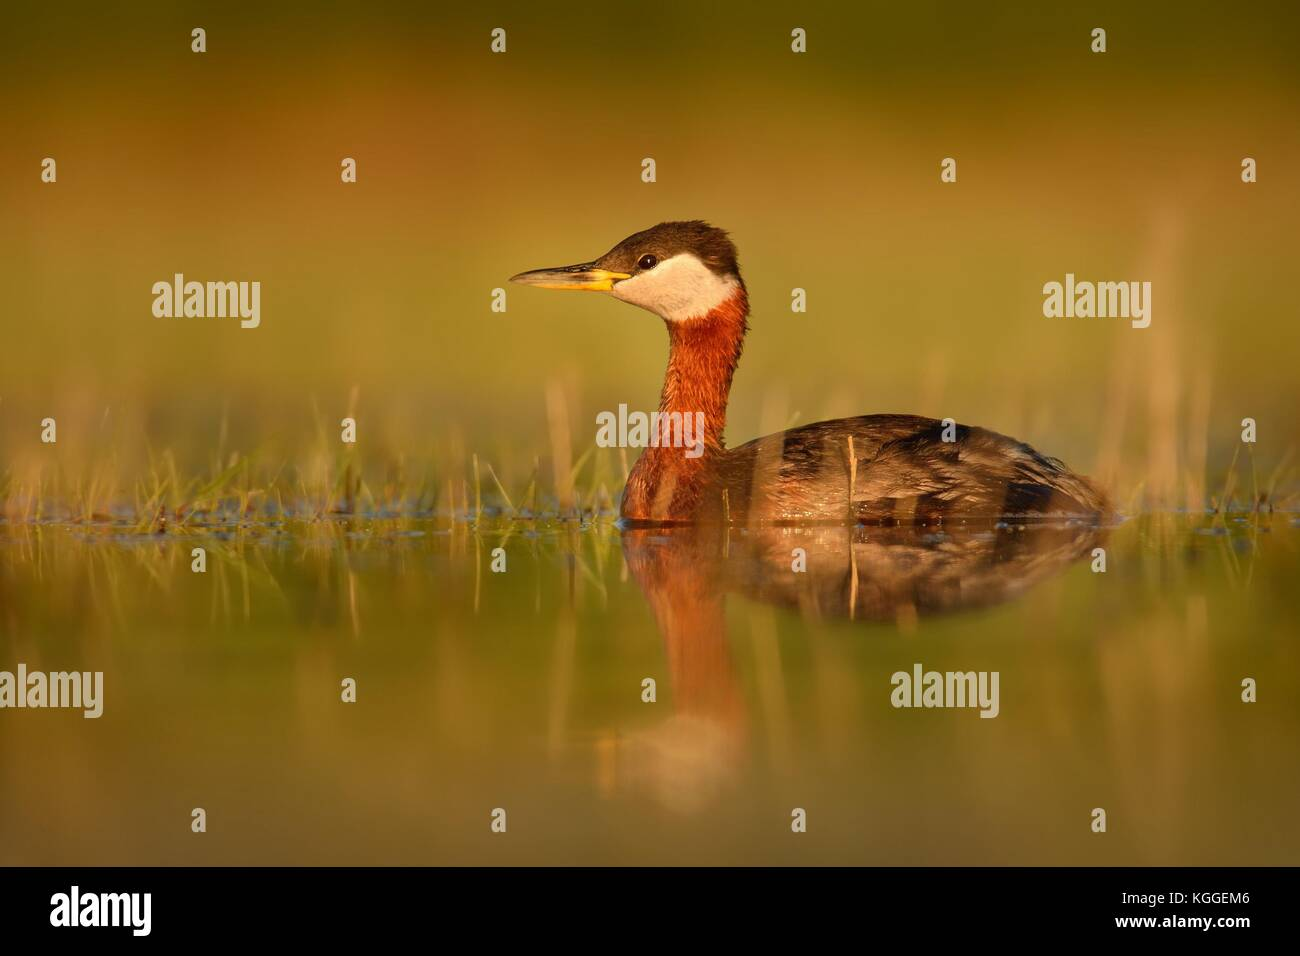 Red-necked Grebe (Podiceps grisegena) on the lake in spring enlightened by evening sun. Beautiful moment. - Stock Image